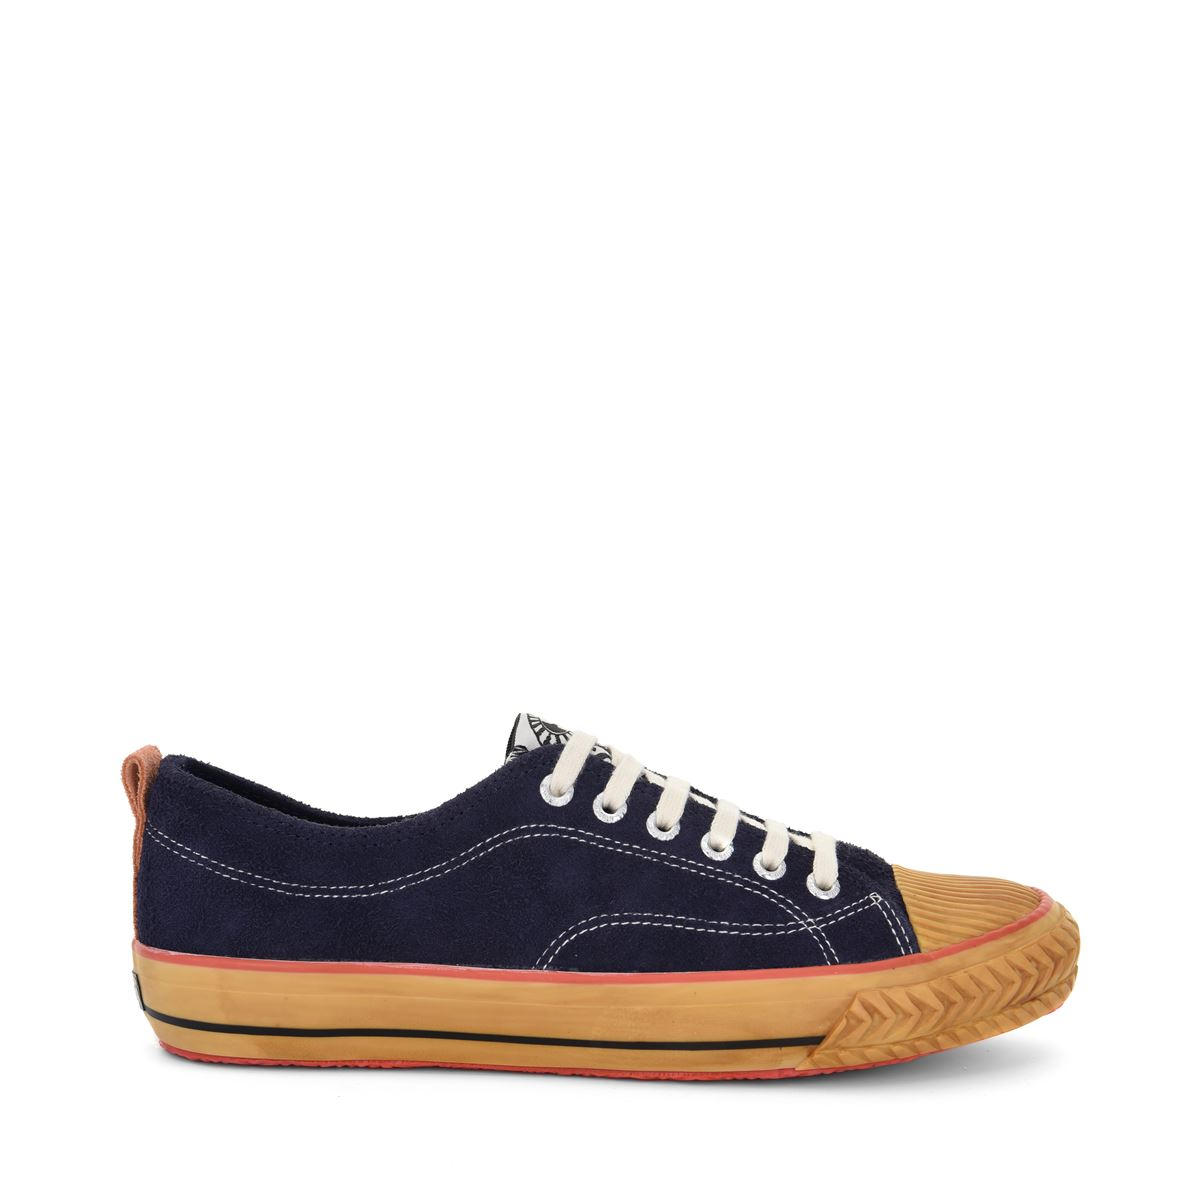 Italian Sneakers Superga for men and women-S1115DW